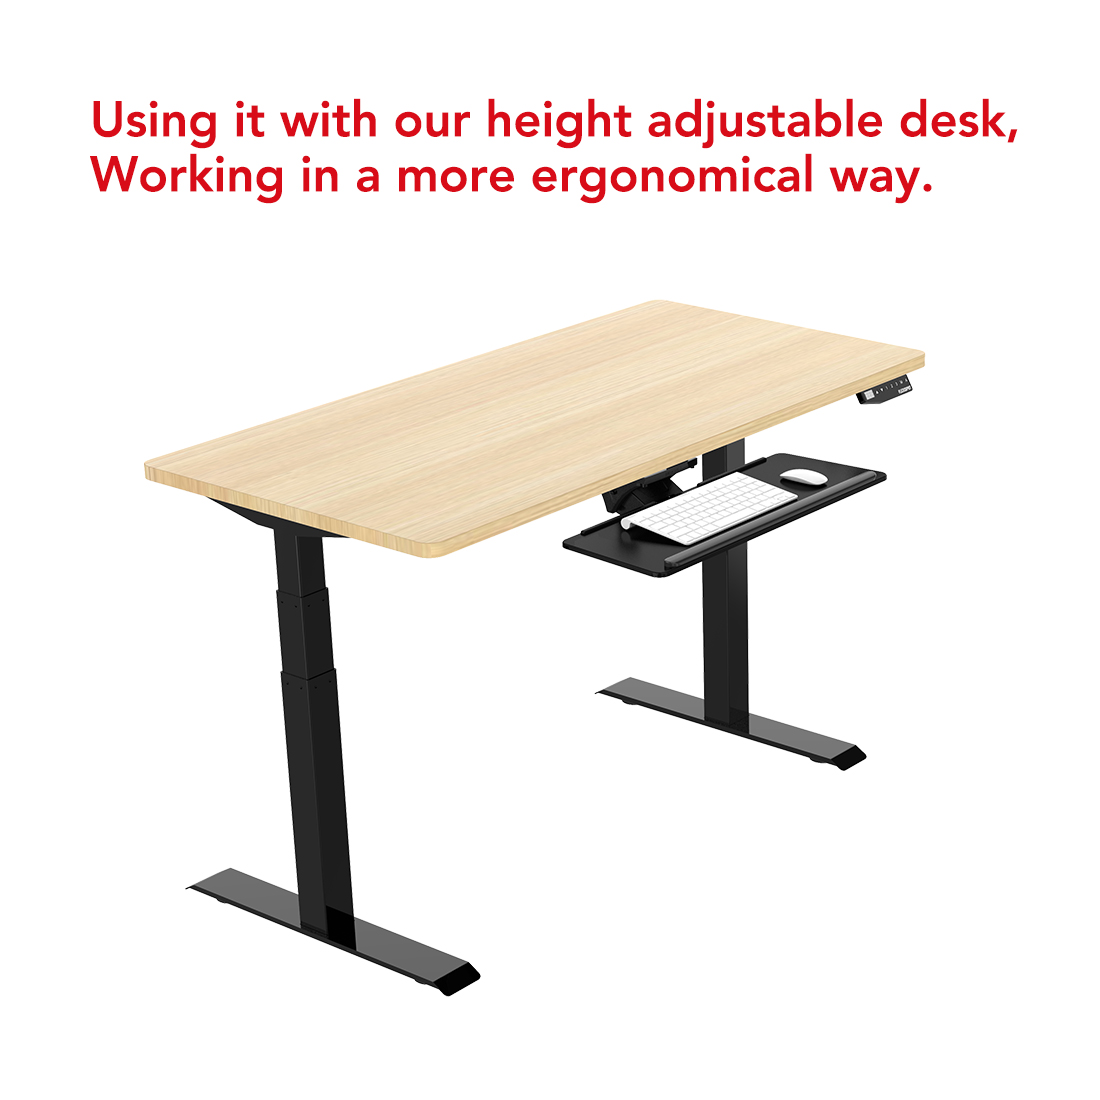 able to use with height adjustable desk